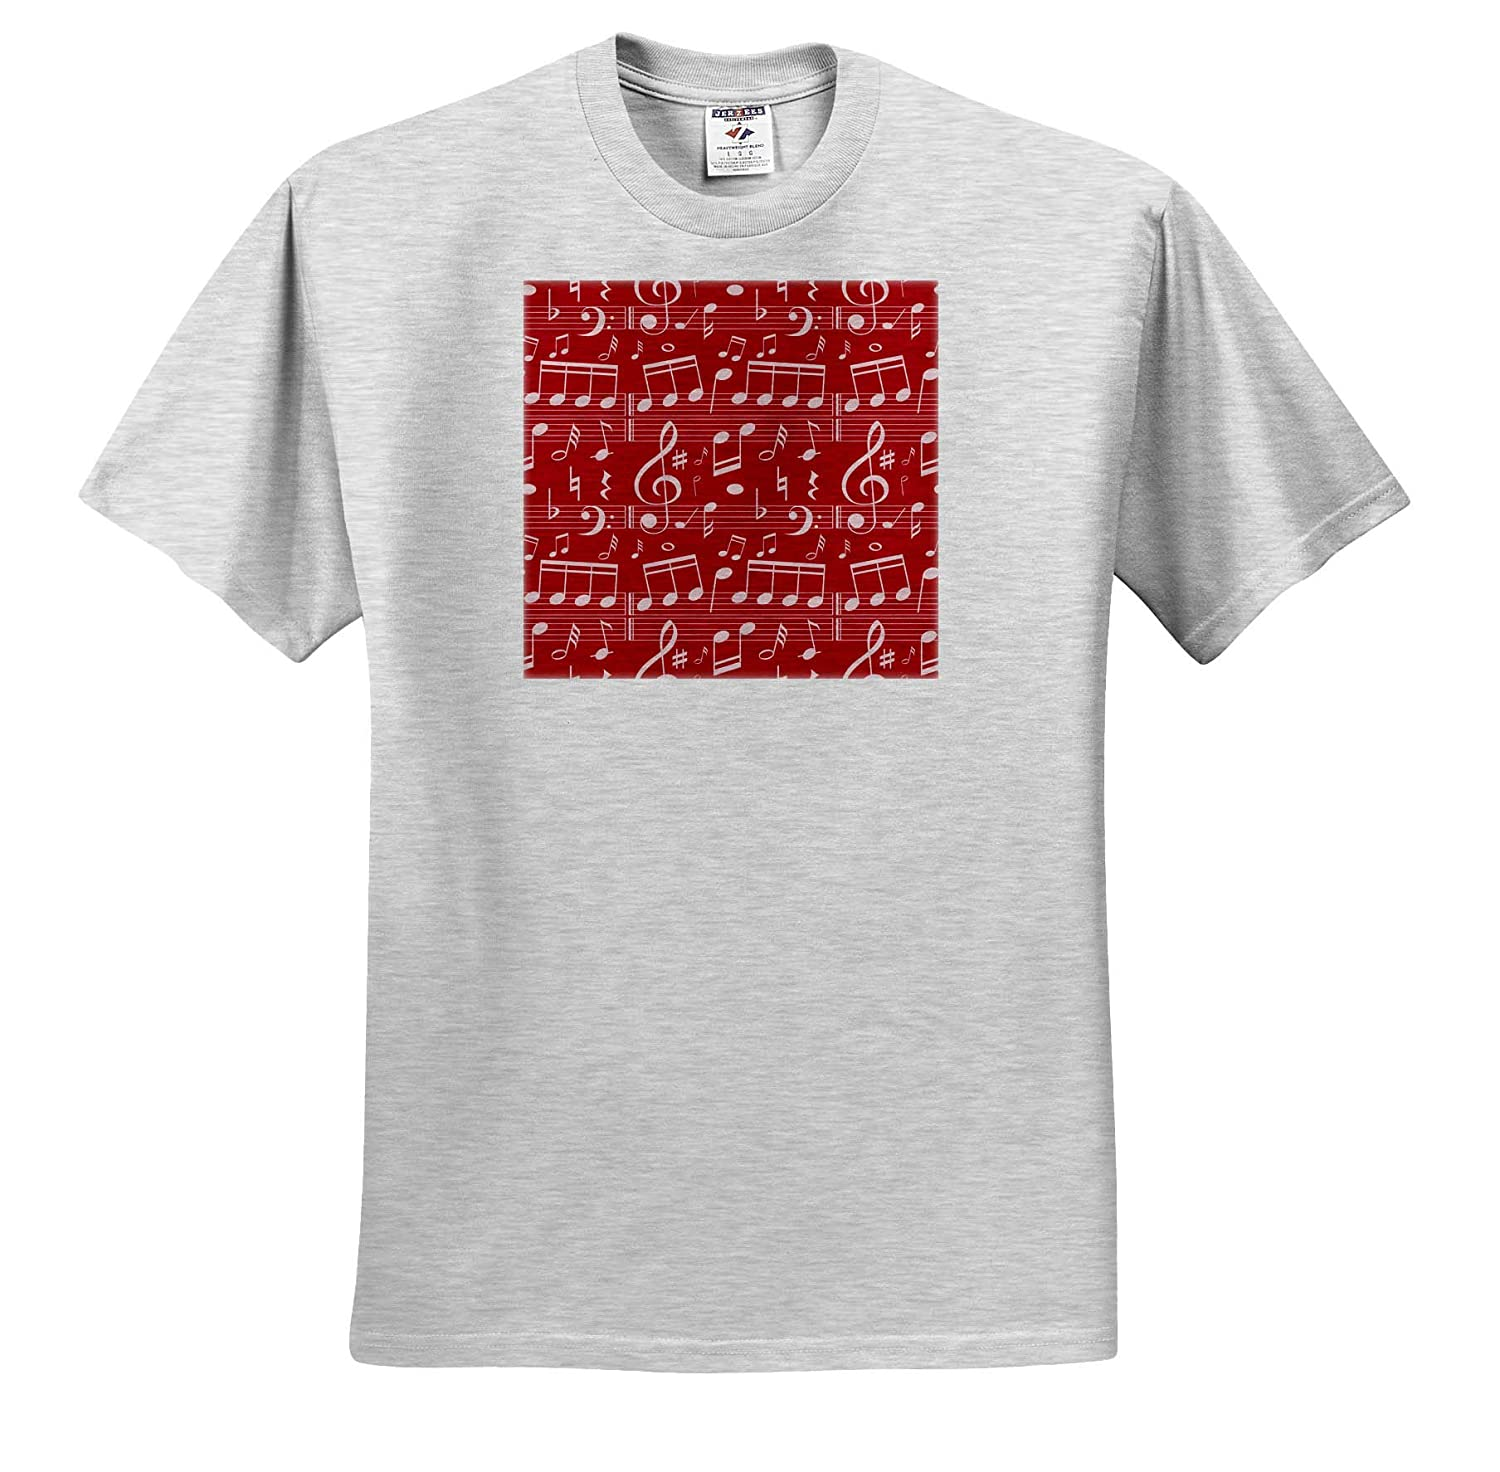 Patterns Red and Off White Musical Notes Pattern 3dRose Anne Marie Baugh ts/_317663 Adult T-Shirt XL